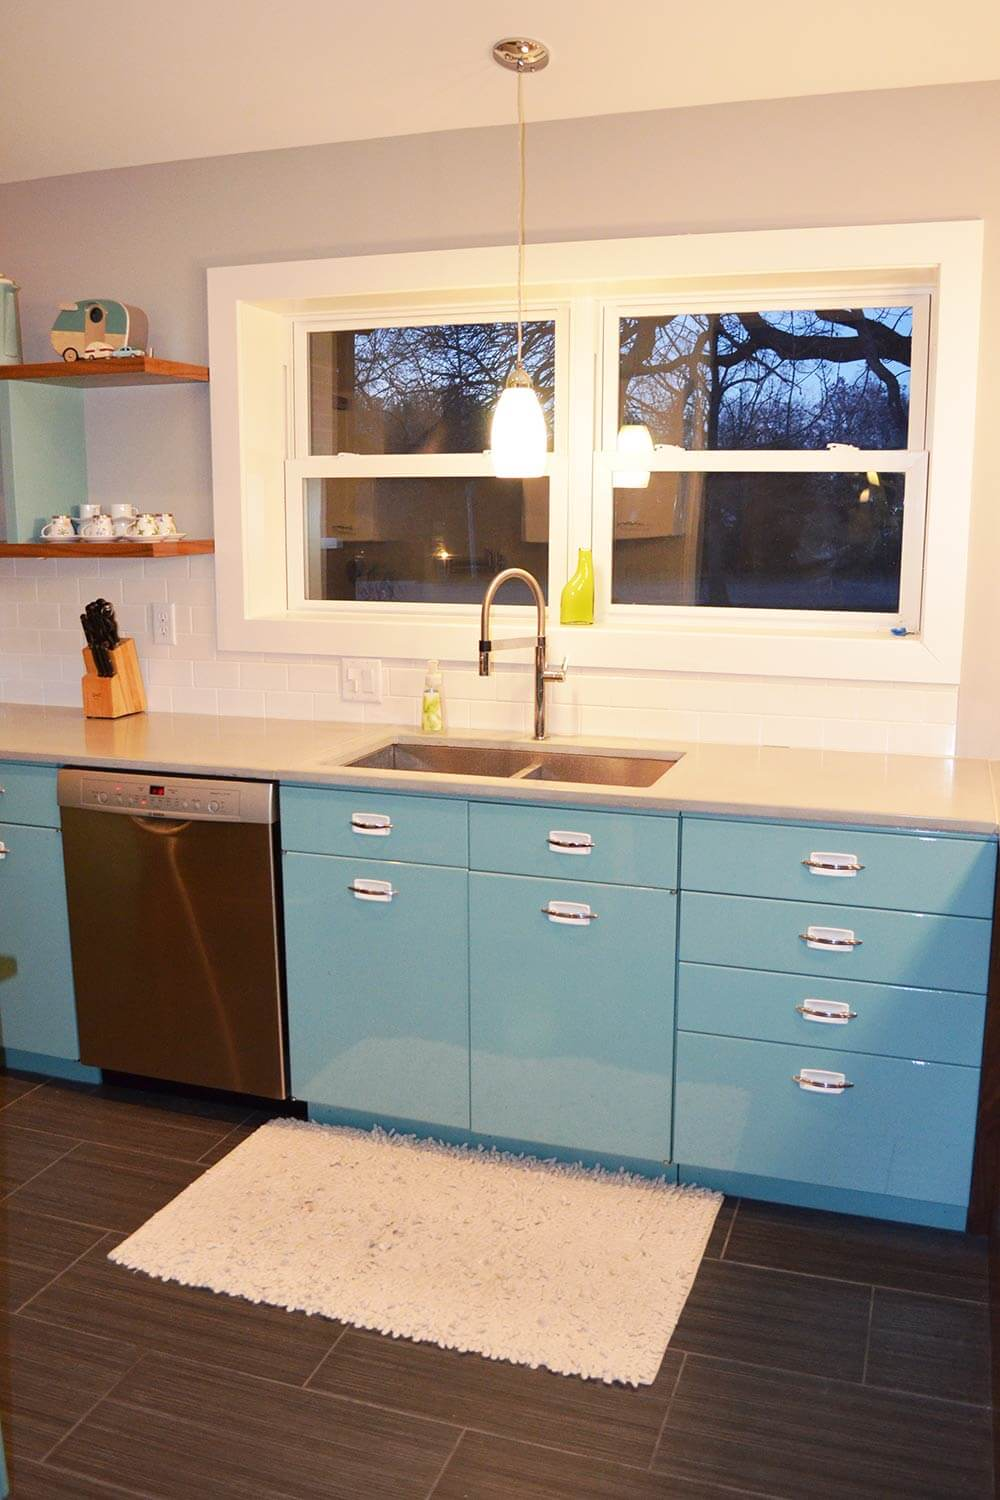 steel kitchen furniture sam has a great experience with powder coating her vintage